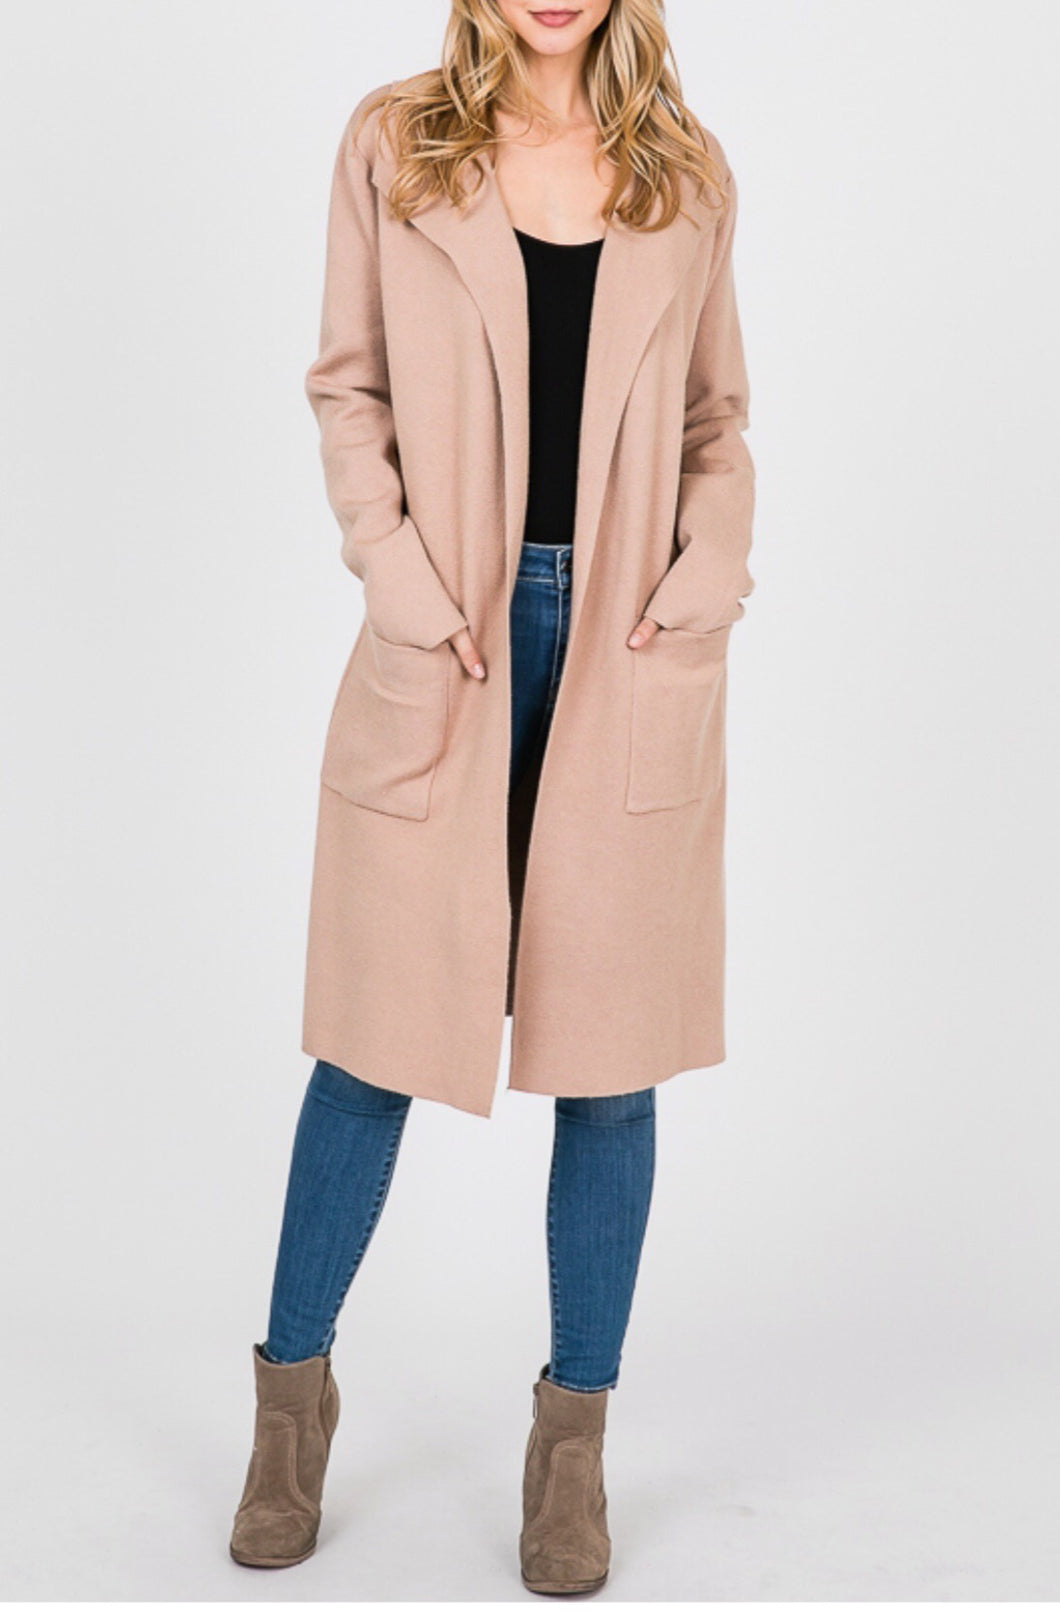 Tribeca Tailored Maxi Coat